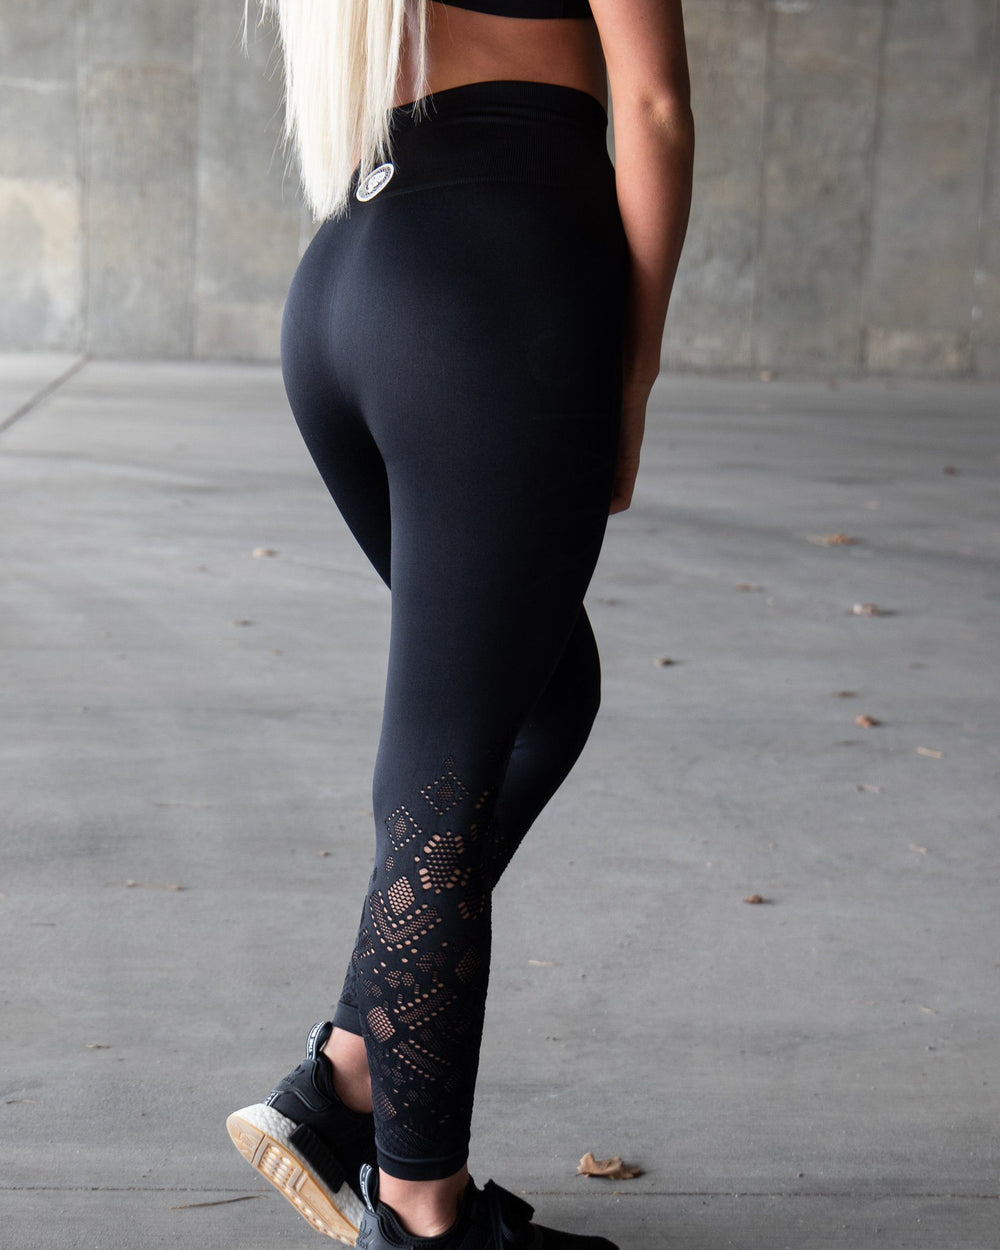 Lace Leggings - Black WOMEN'S LEGGINGS STAIX